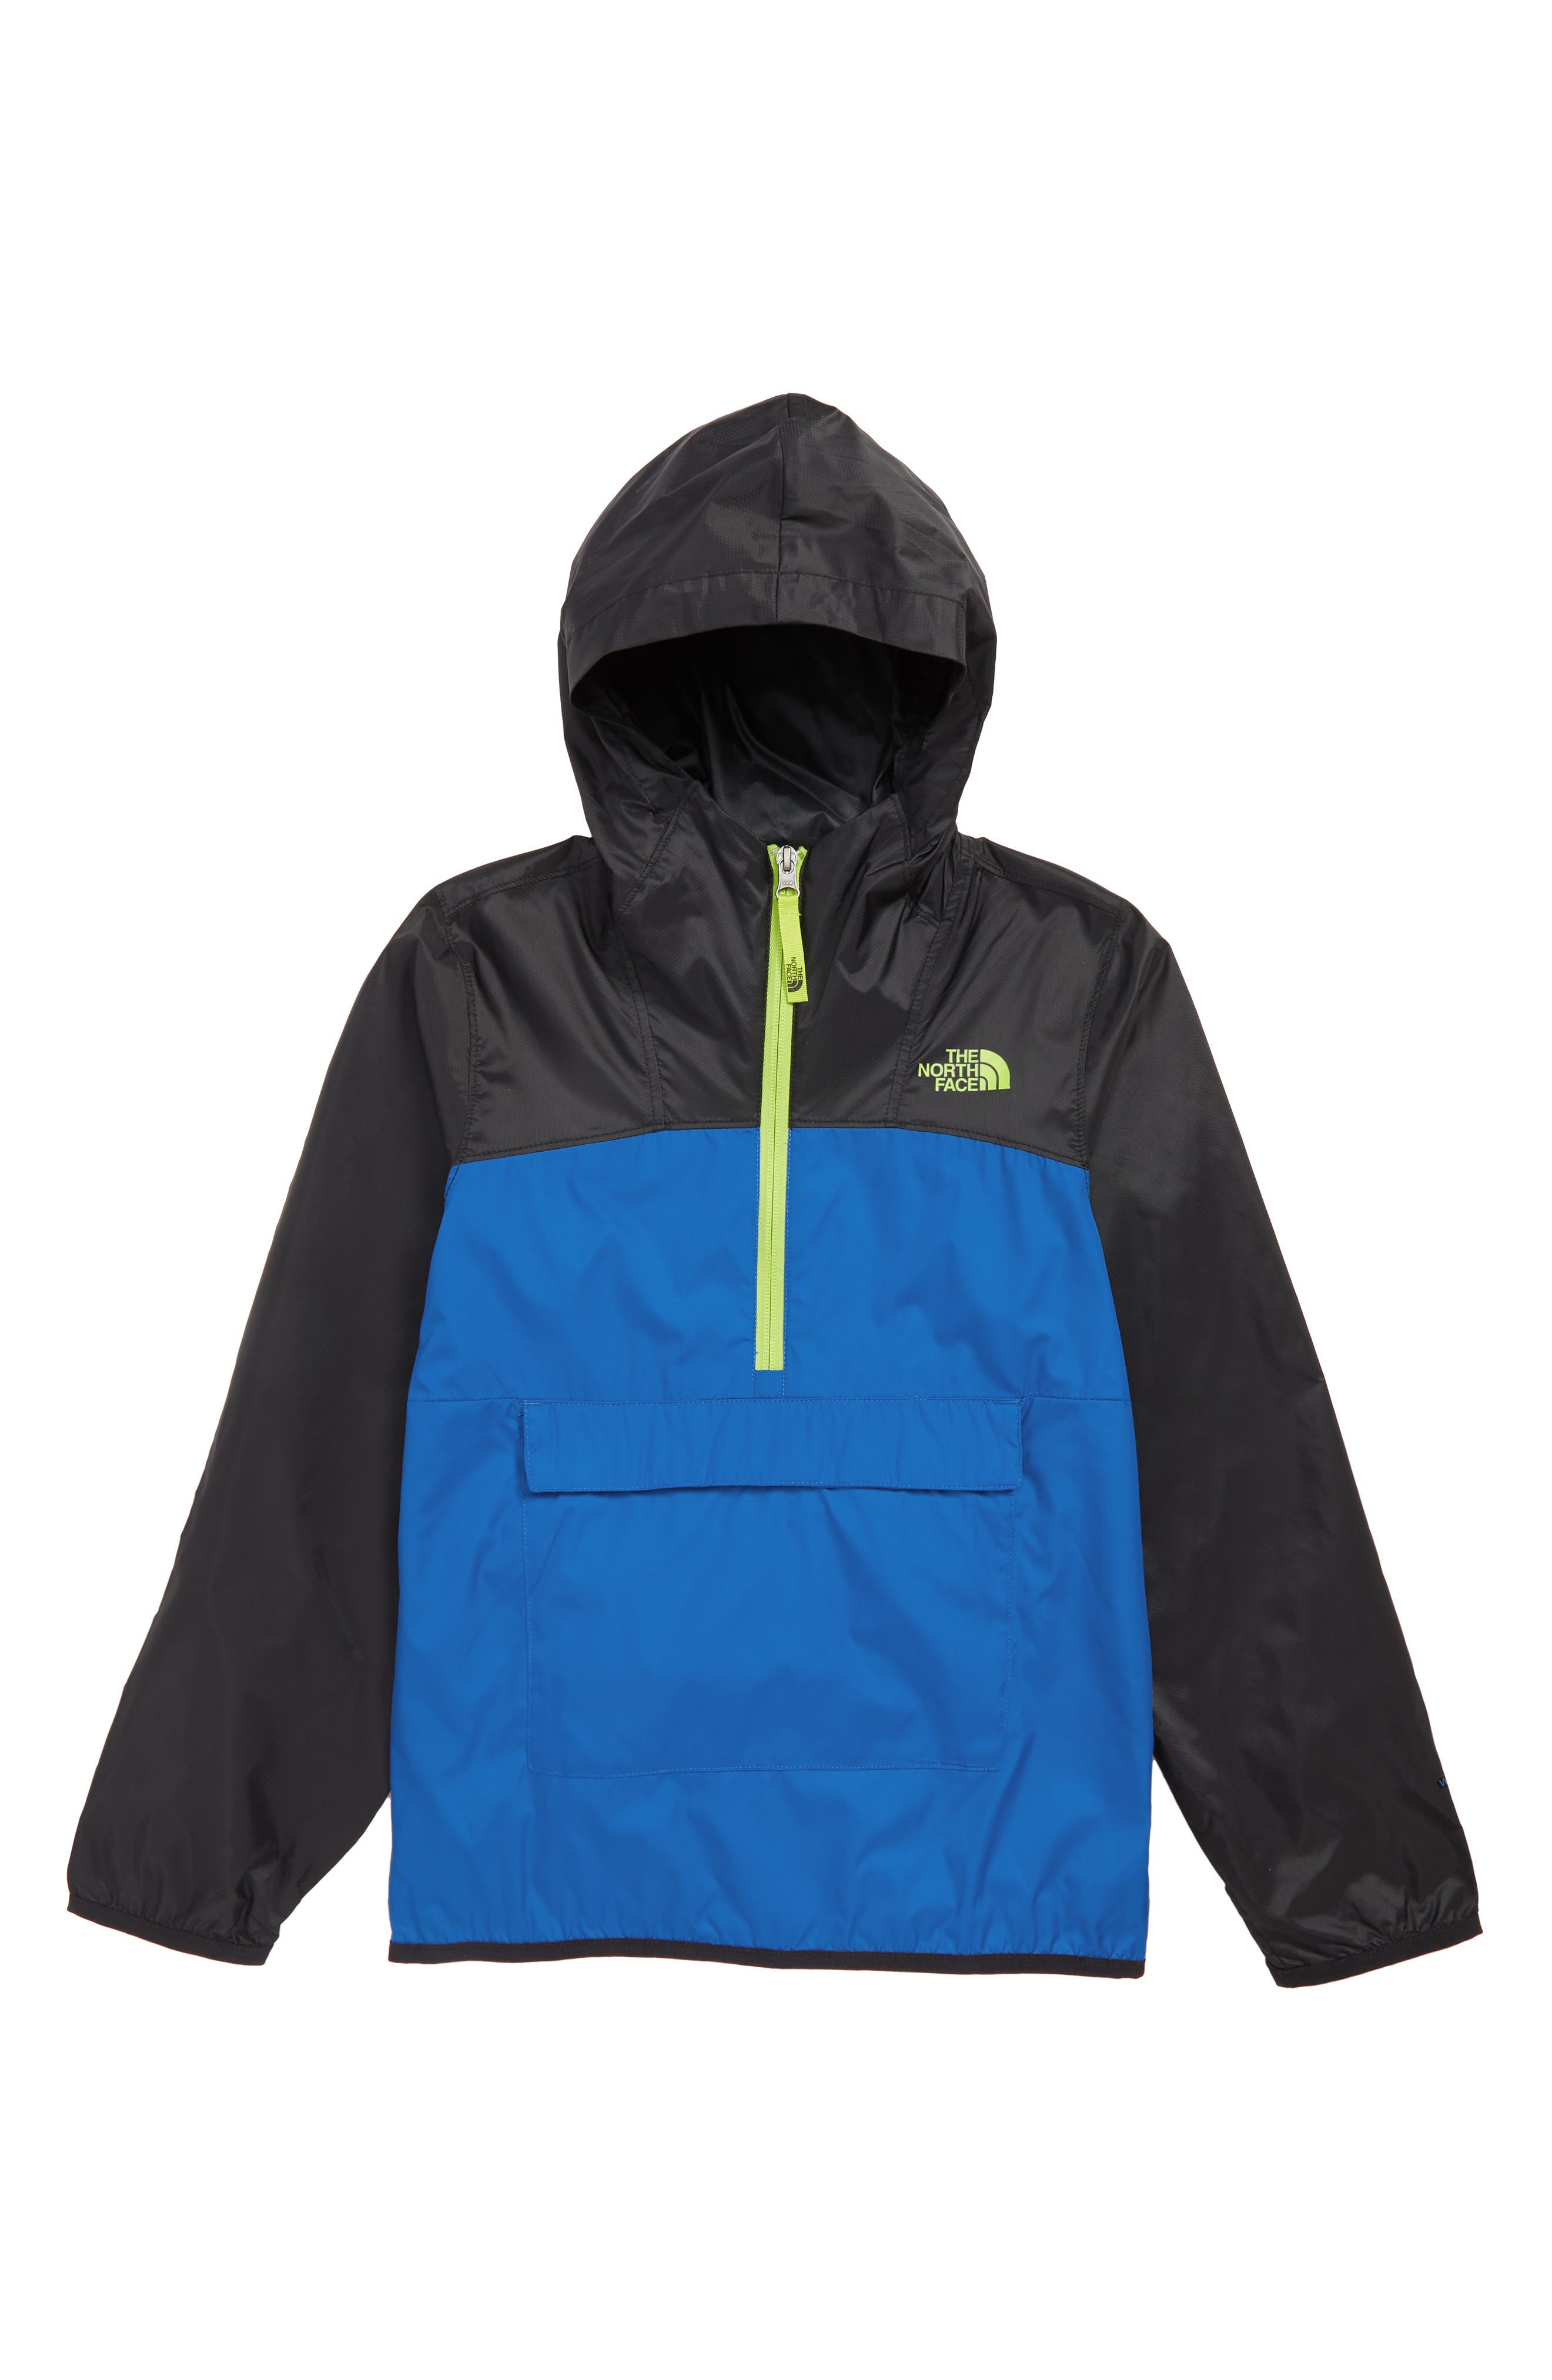 THE NORTH FACE, Fanorak Water Repellent Hooded Windbreaker, Main thumbnail 1, color, TURKISH SEA